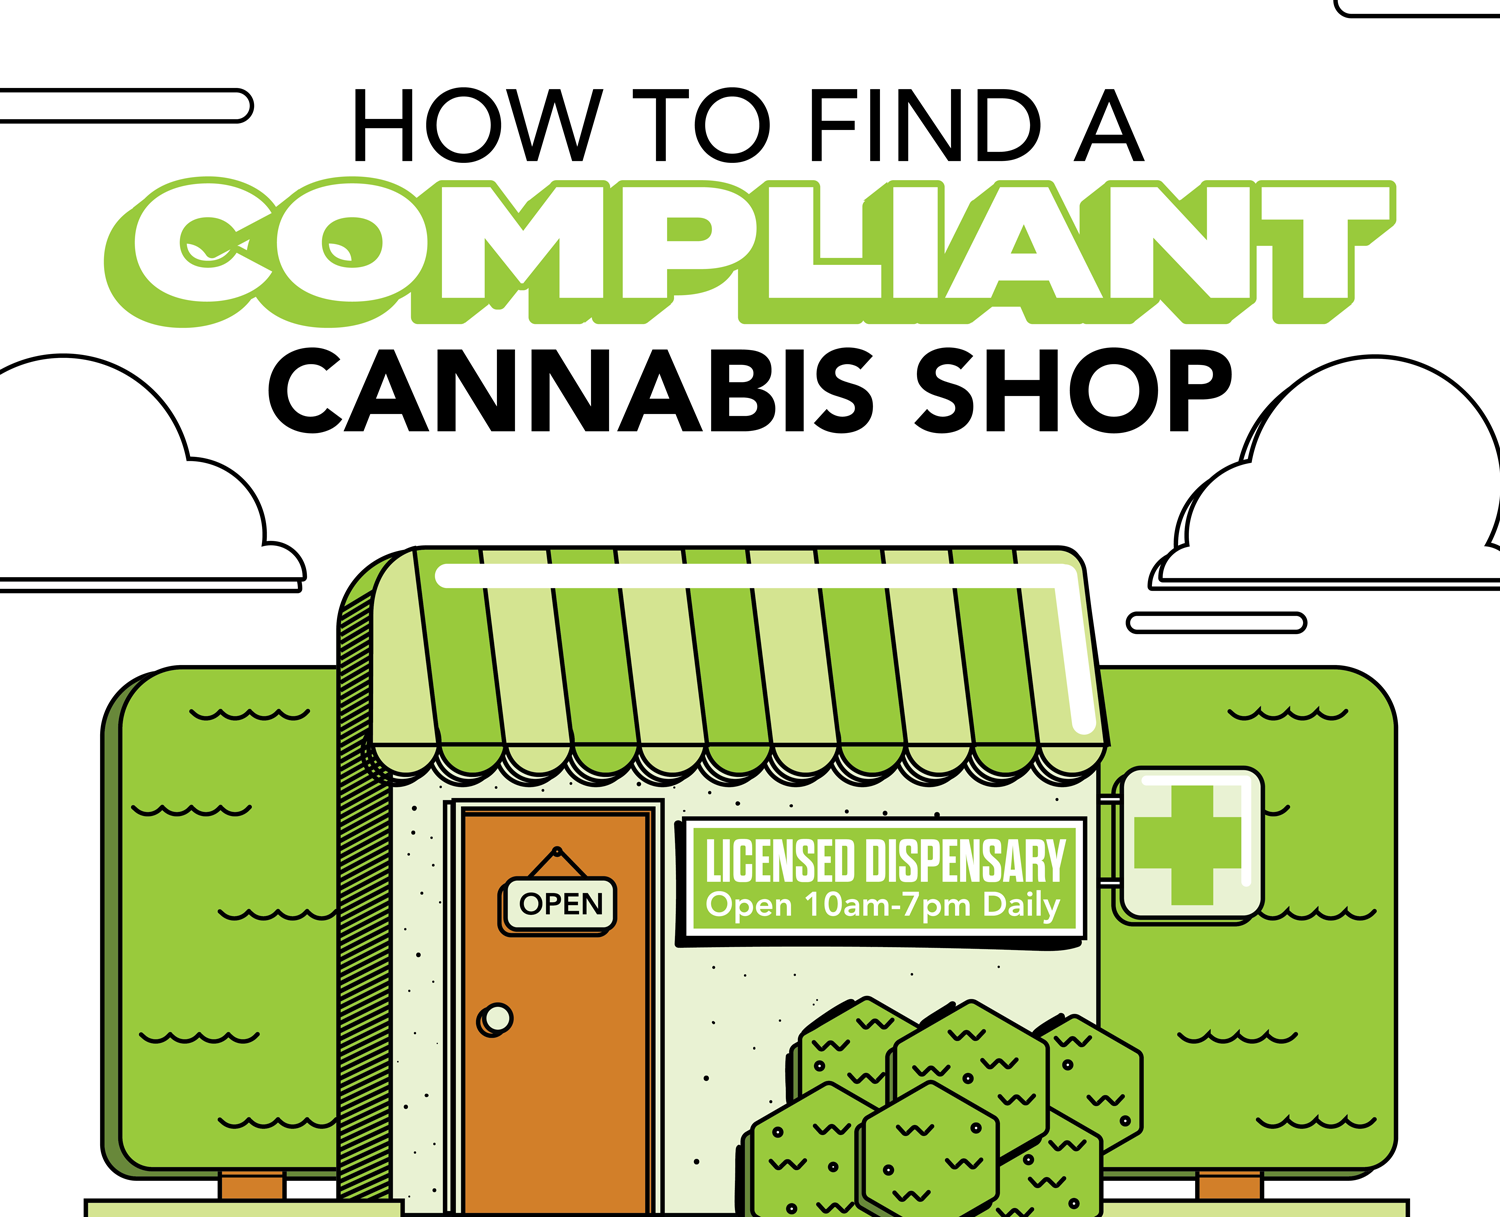 How to Find a Compliant Cannabis Shop